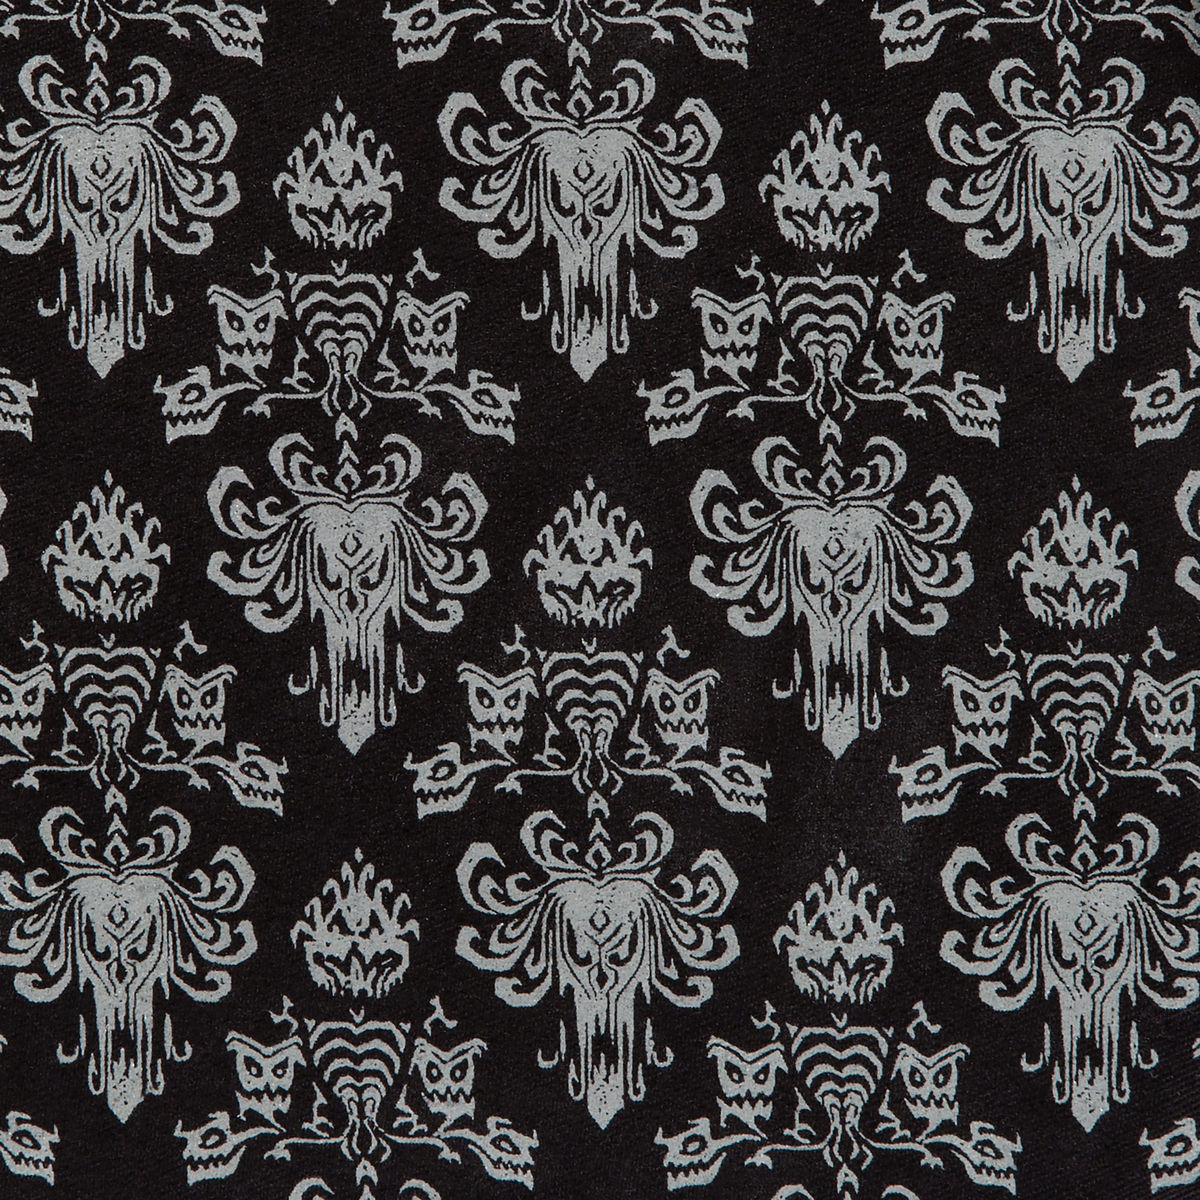 2f8db9e4b4f Disney Loungefly Backpack - The Haunted Mansion - Wallpaper - Mini